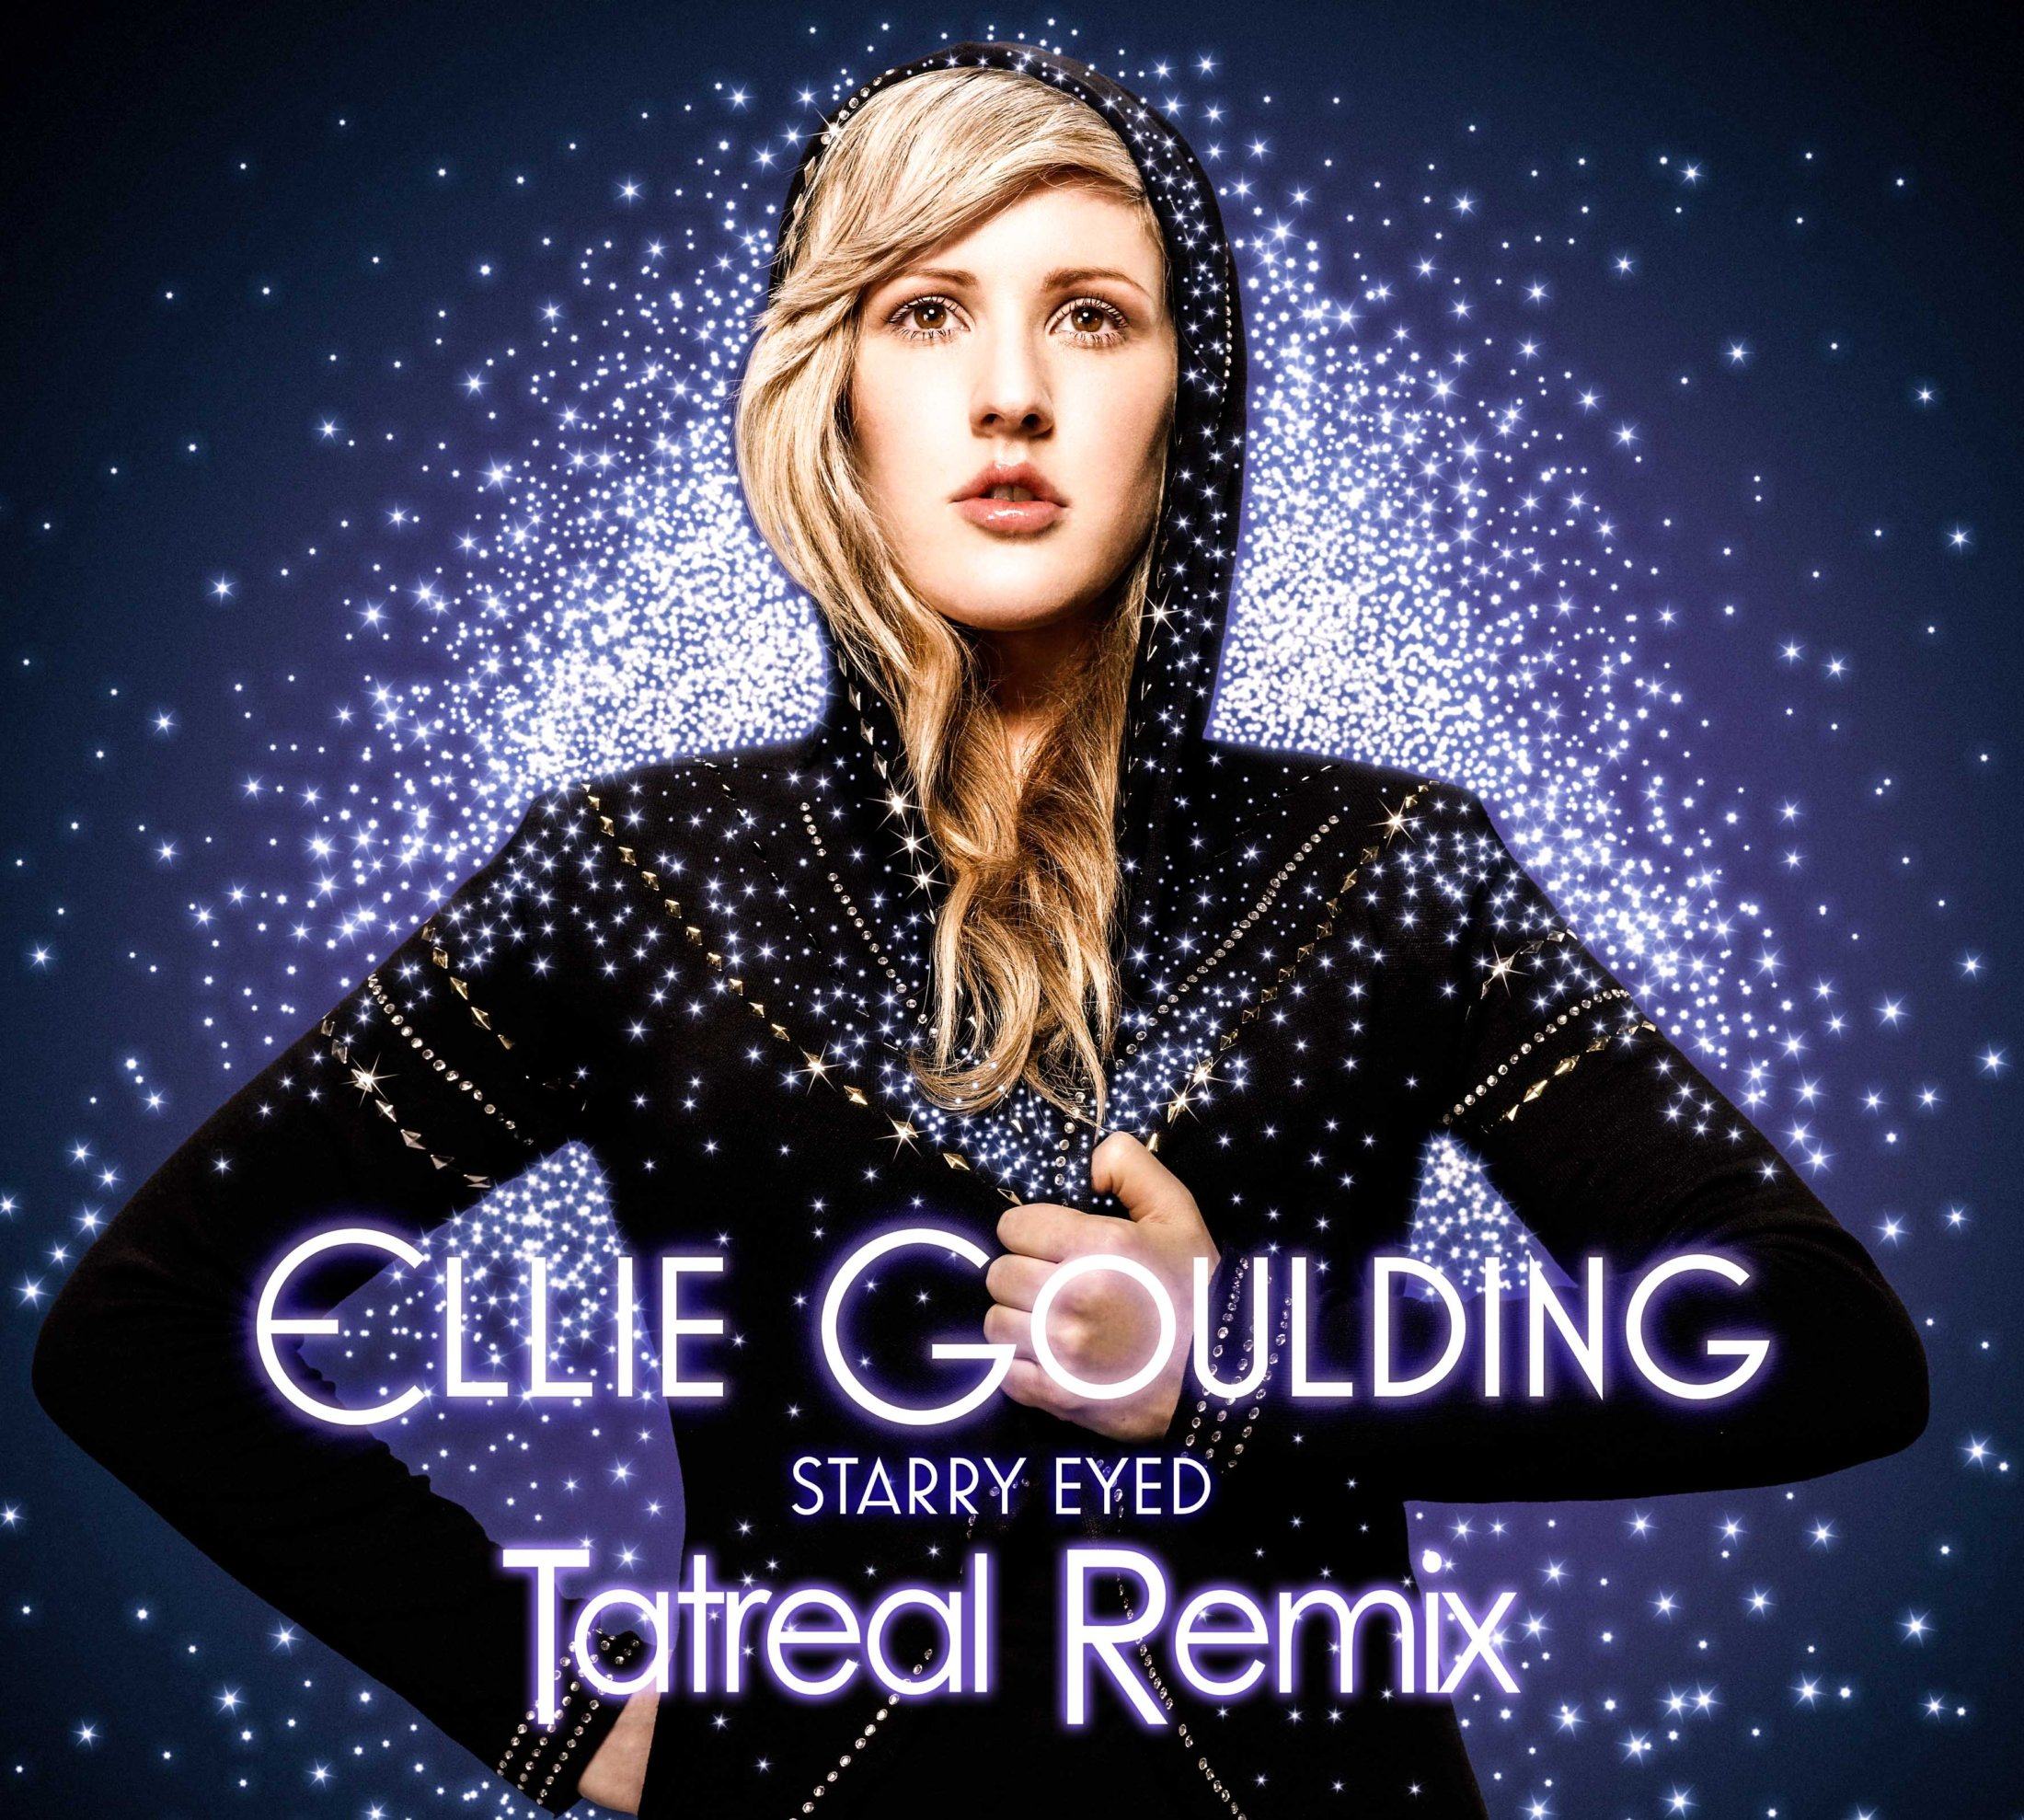 Ellie-Goulding-Starry-Eyed